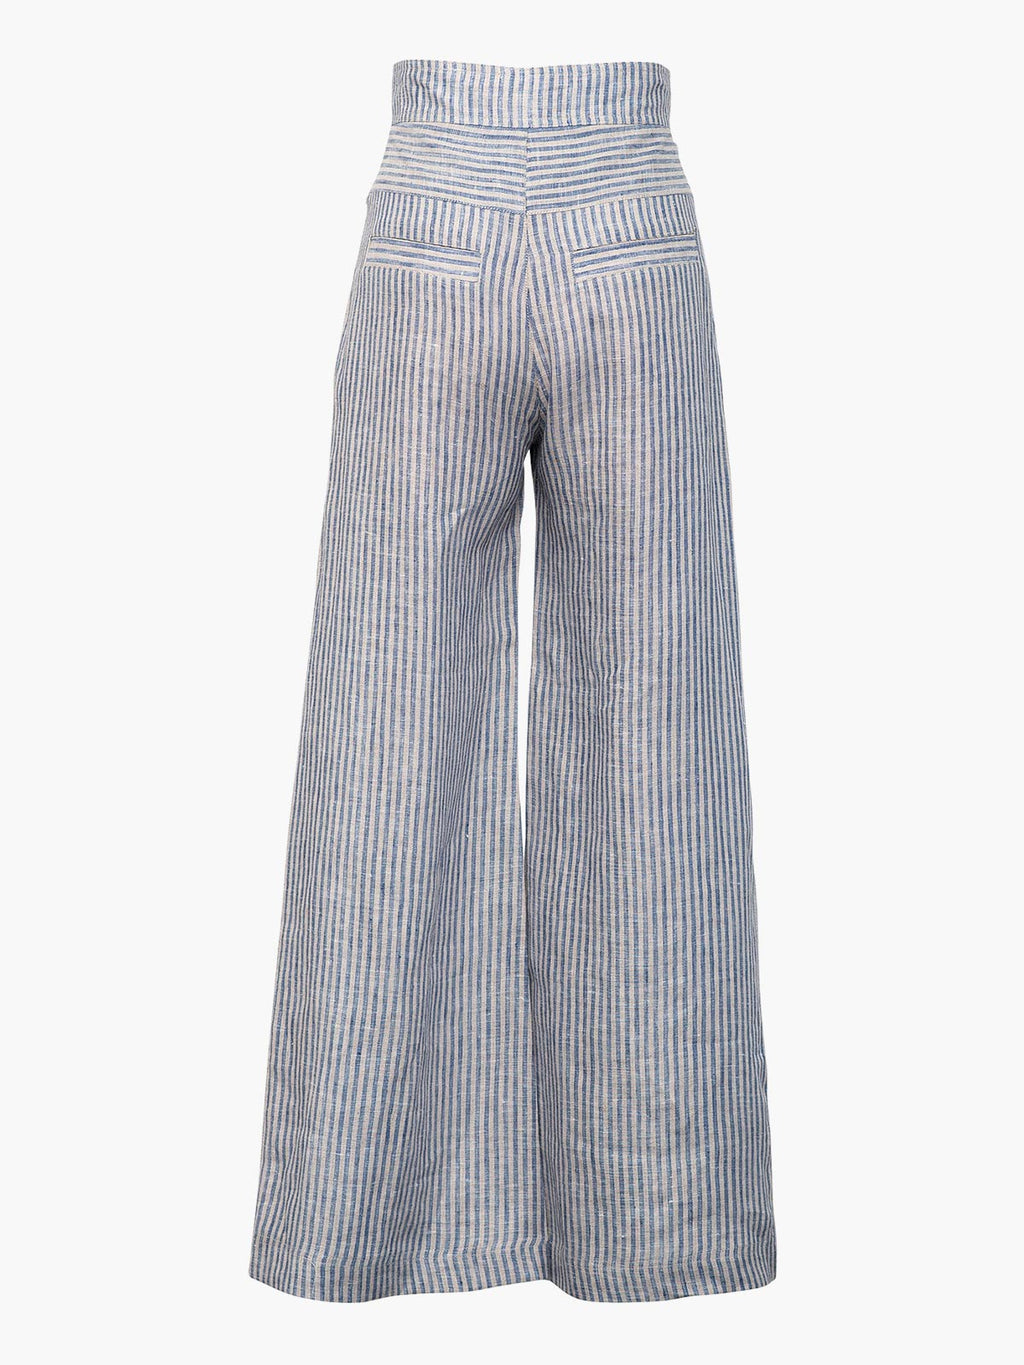 La Mar Trousers